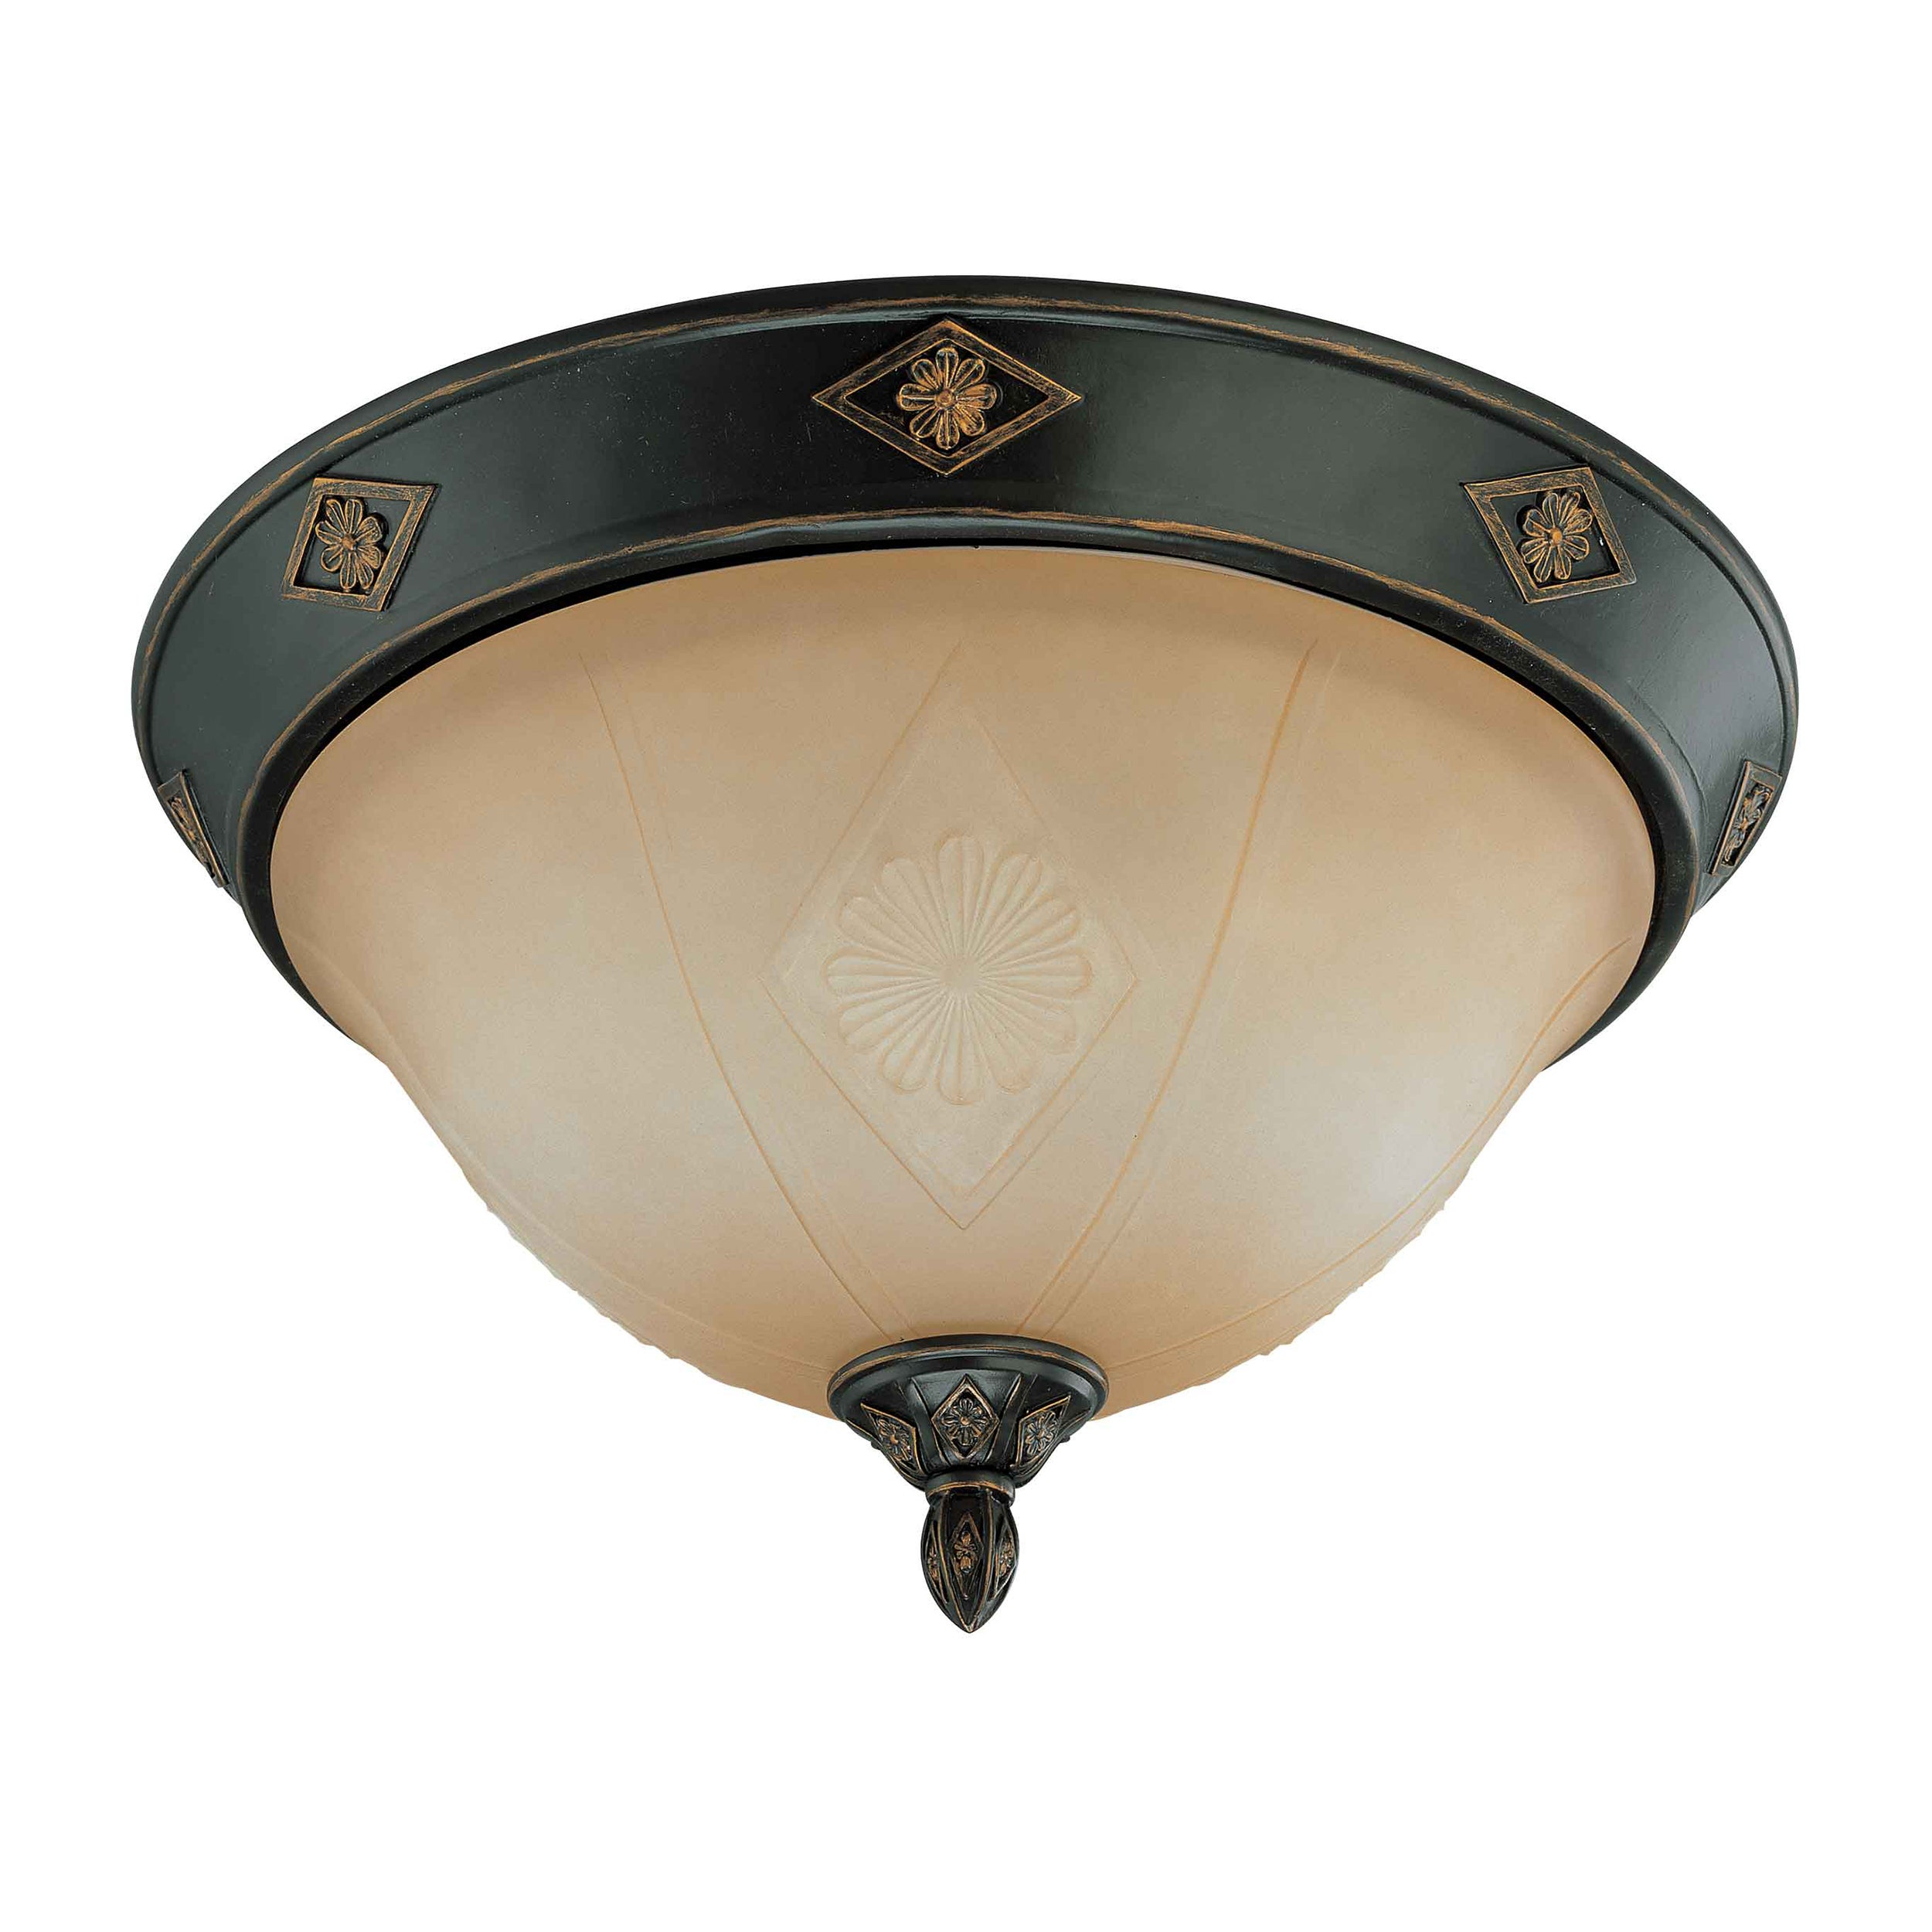 Brussells 3 Light 16 inch Flush Dome Belgium Bronze with Fresco Glass